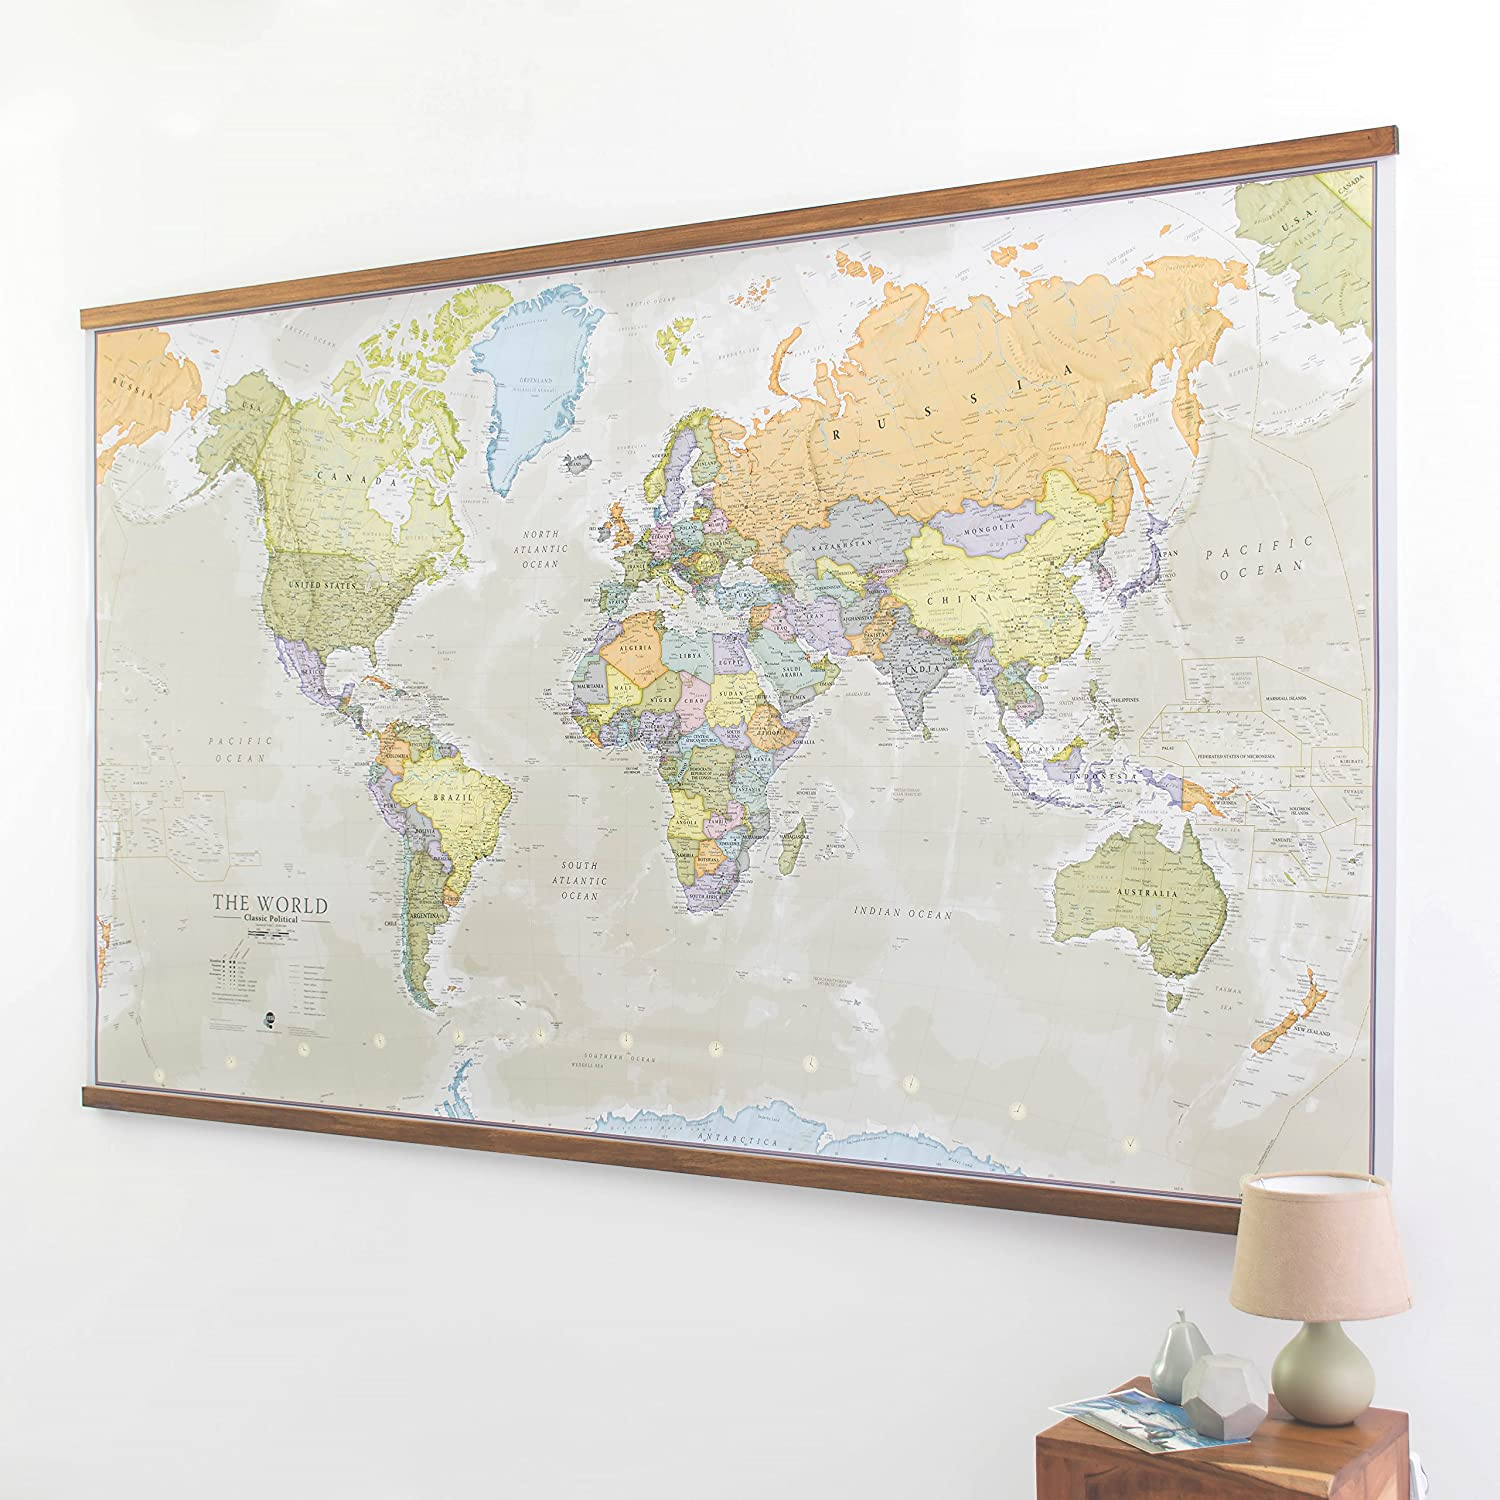 A0 Size 84.1 x 118.9 cm Paper Laminated World Map with Flags